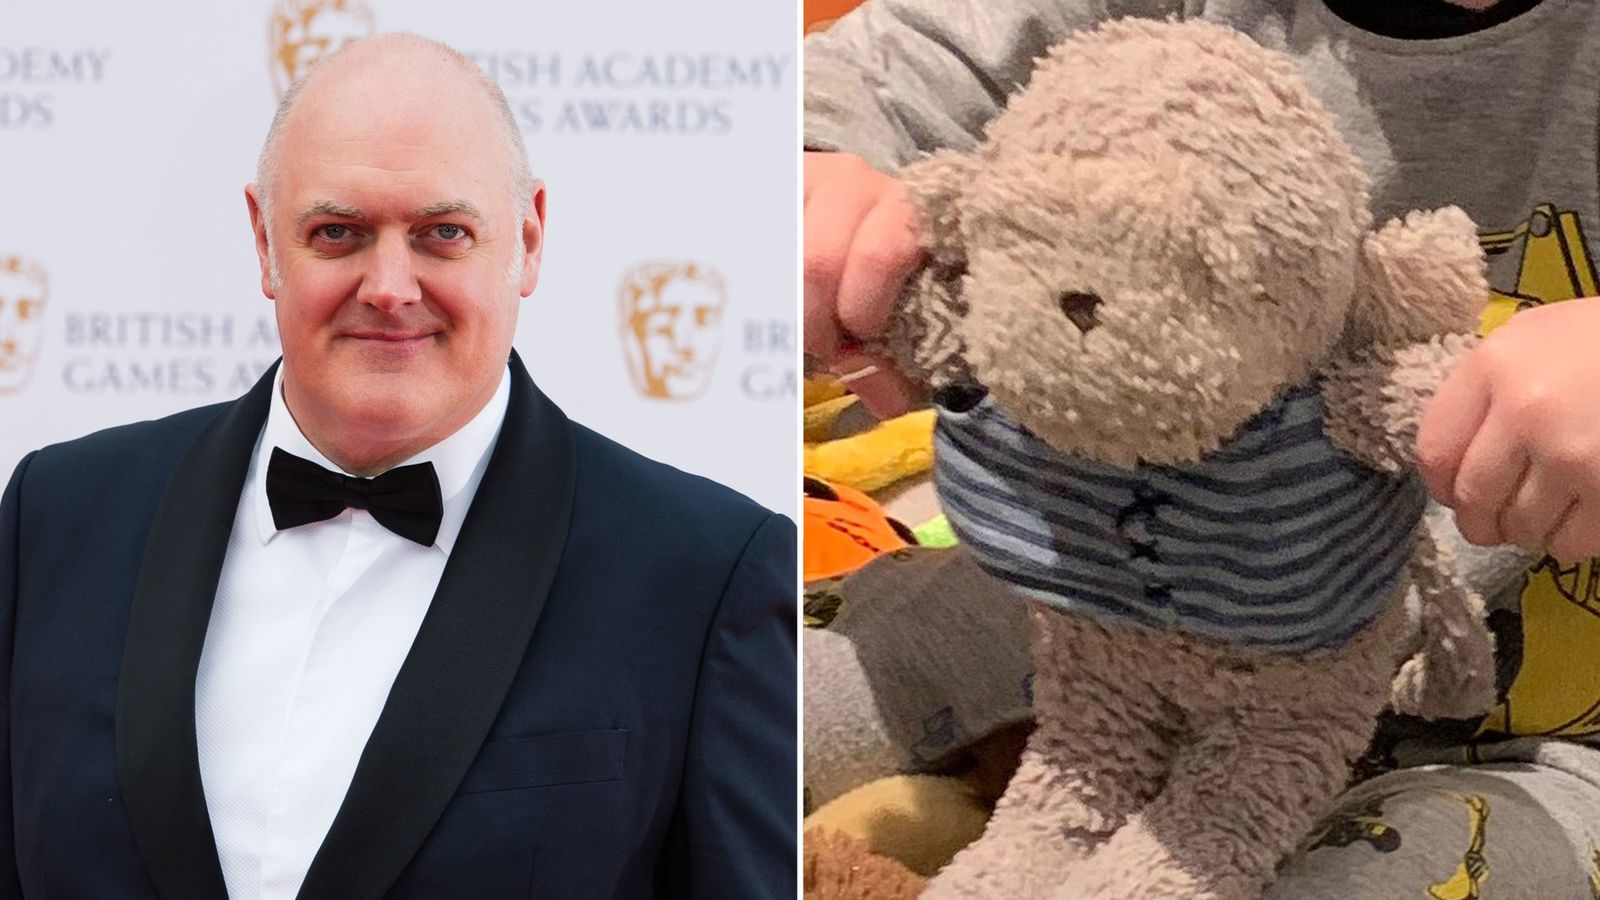 Dara O Briain's appeal to find son's lost teddy raises £25,000